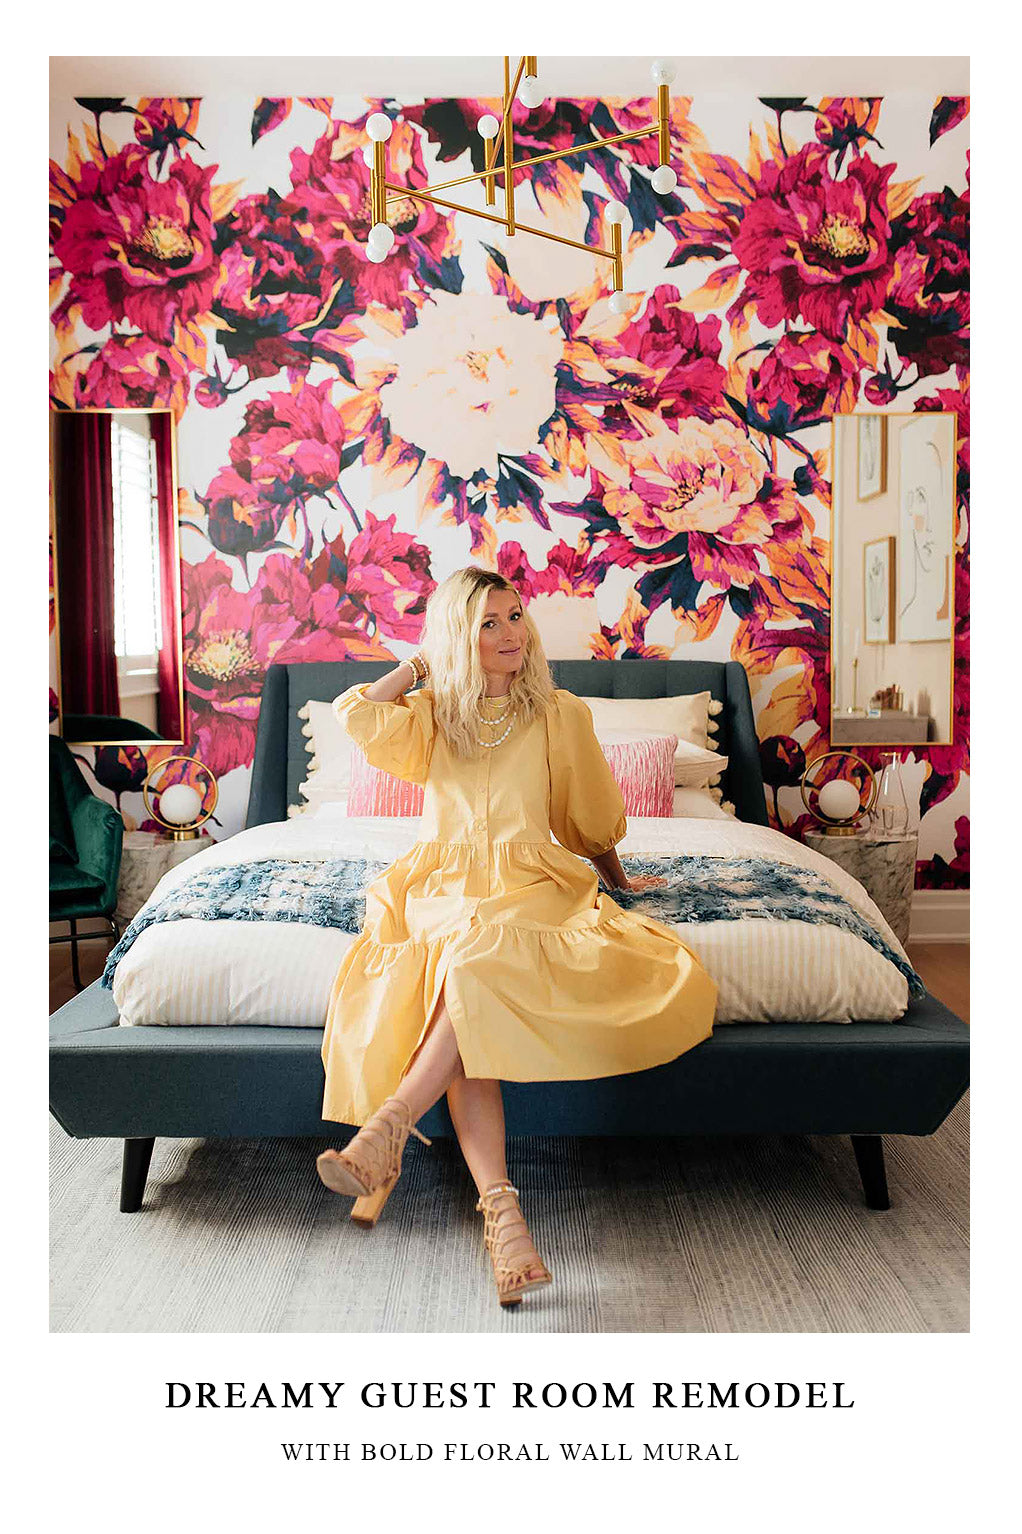 Hotel style guest room interior inspiration with floral accent wall behind bed